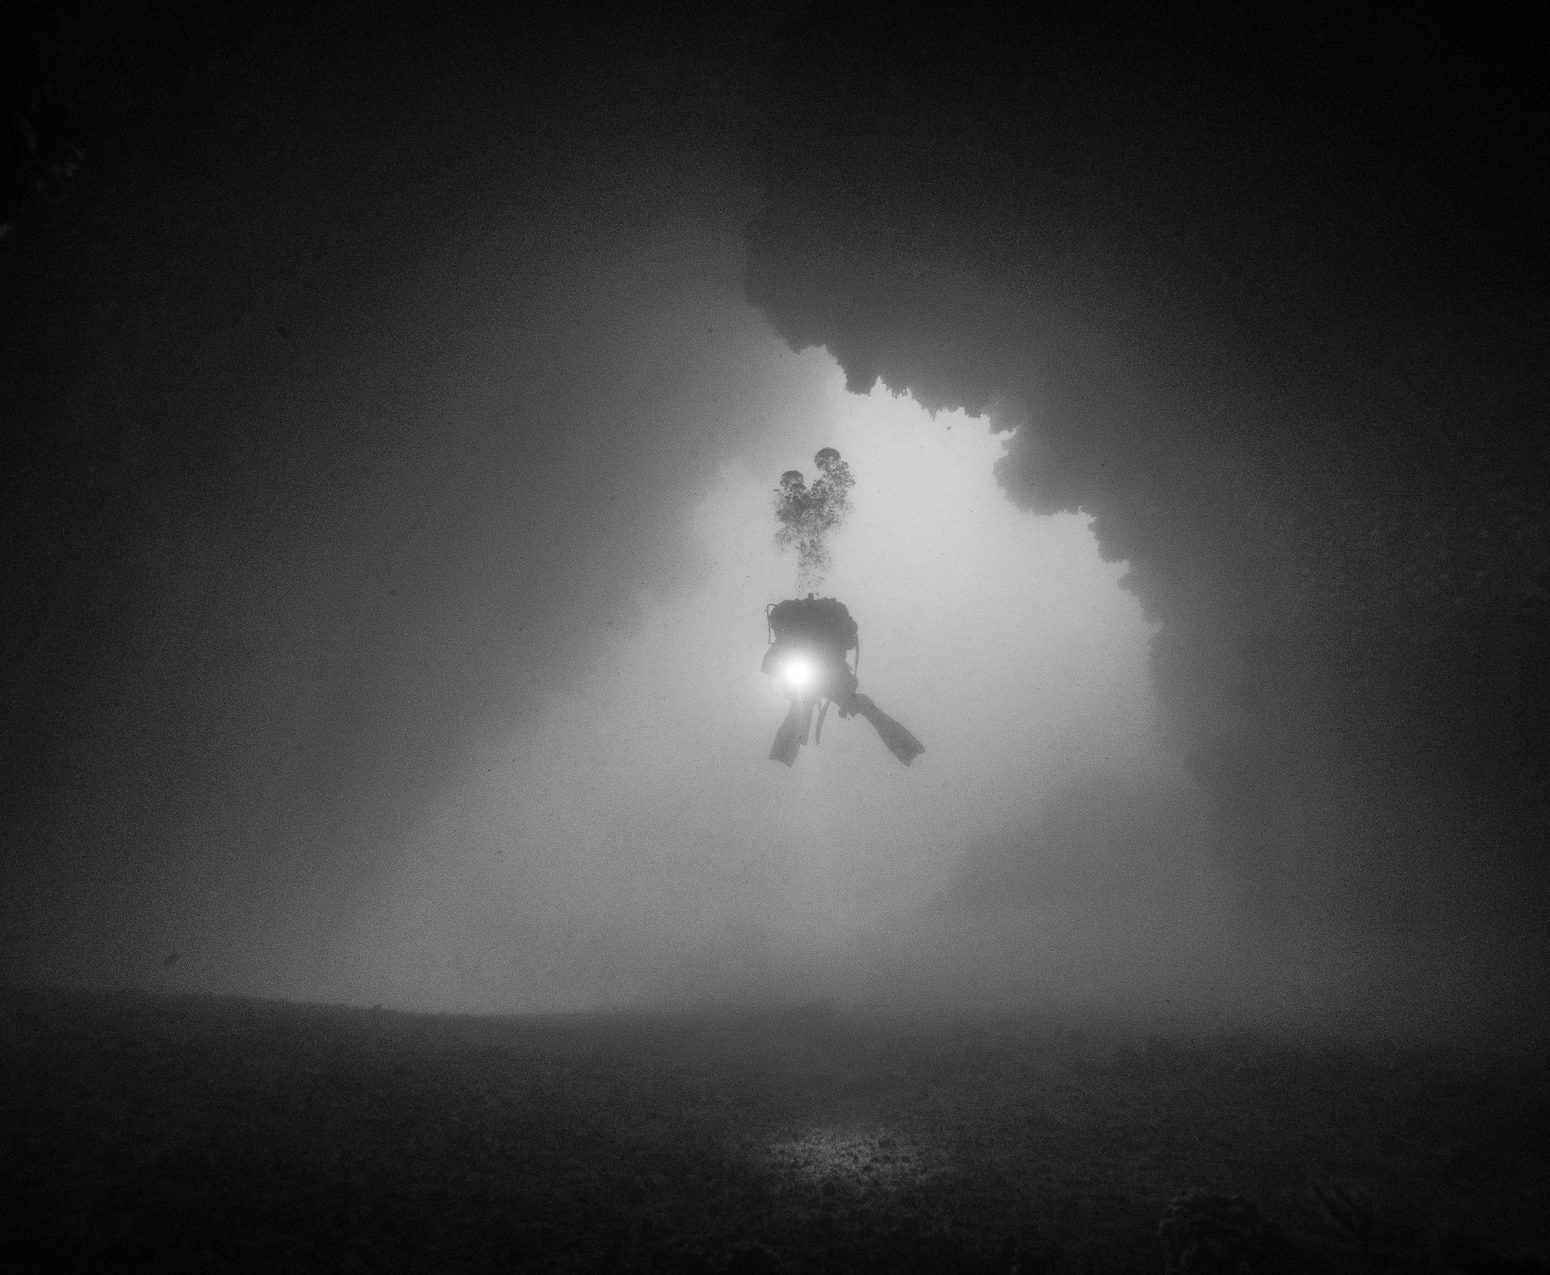 Diving Krk, monochrome